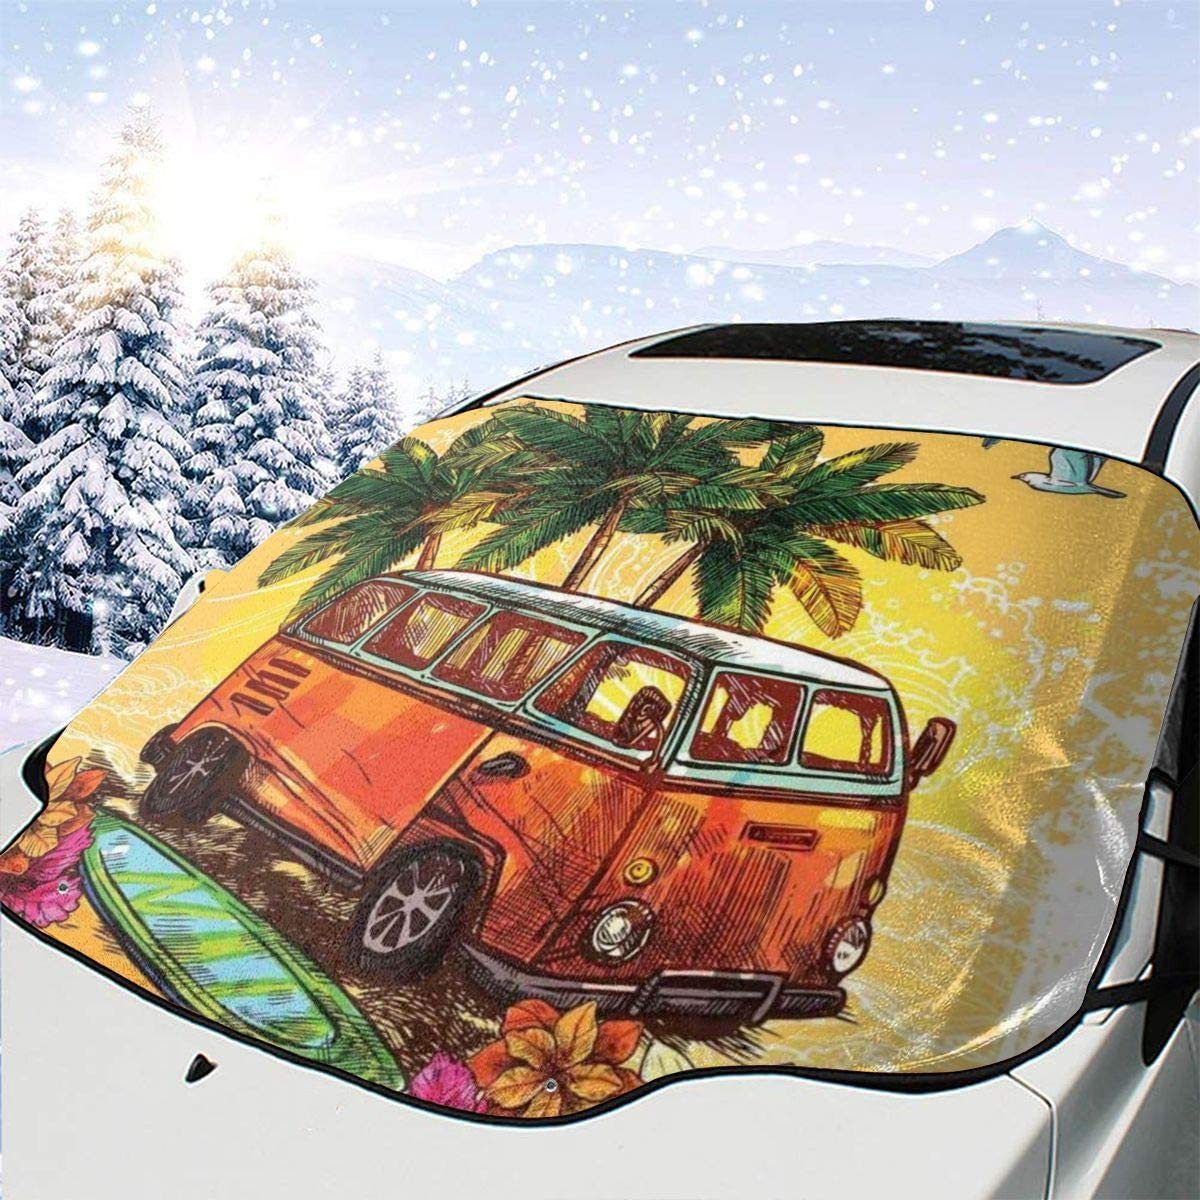 Pillow Bags Hippie Classic Old Bus with Surfboard Freedom Holiday Exotic Life Sketchy Art One Size Car Front Windshield Cover Foldable Sunshade Fits Most Cars, Trucks, SUV's